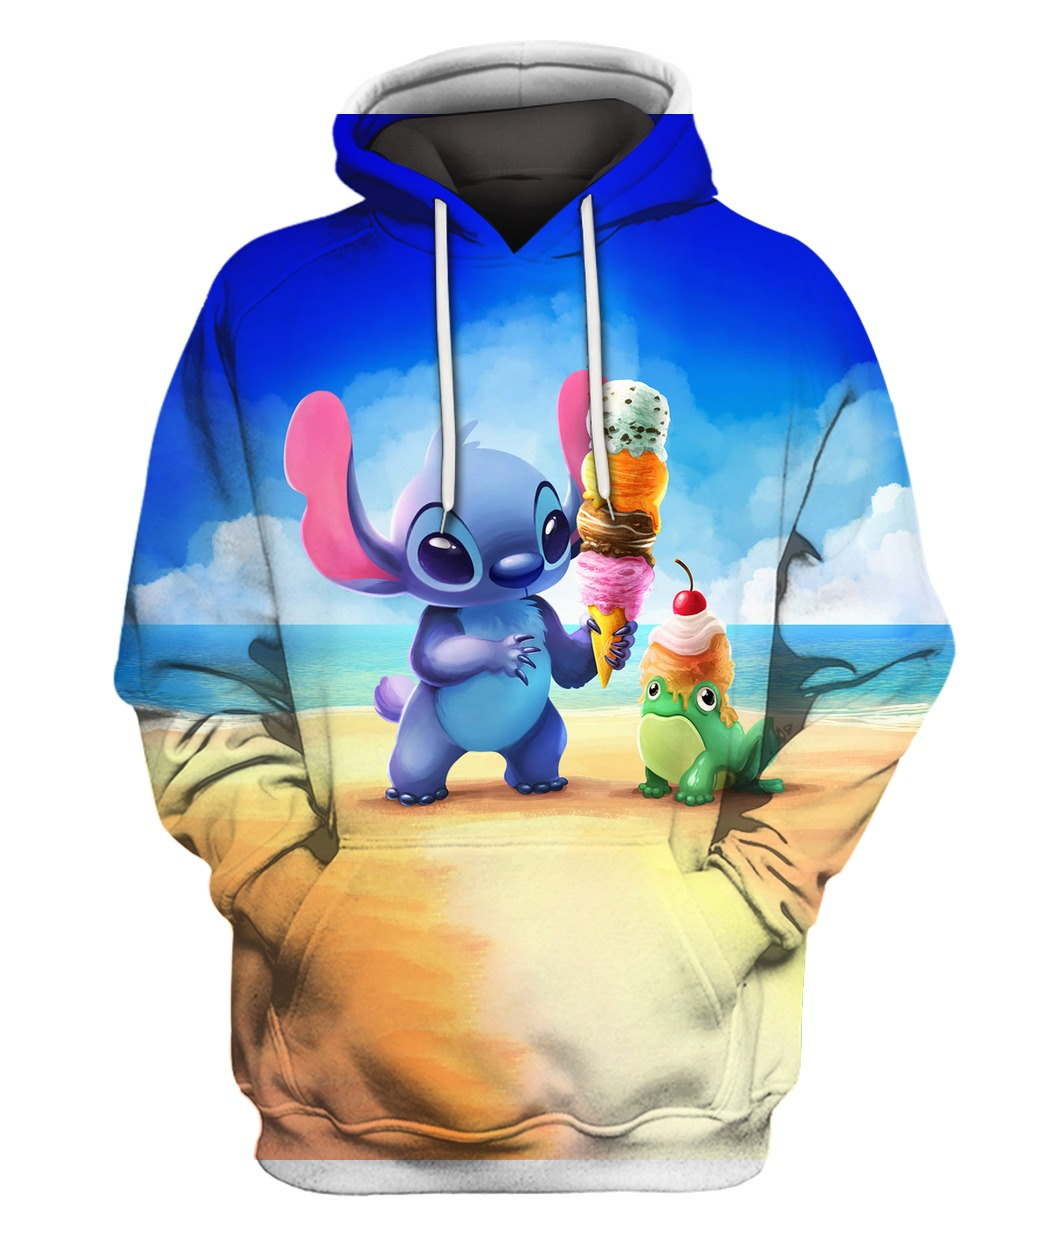 Stitch and ice-cream all over printed hoodie